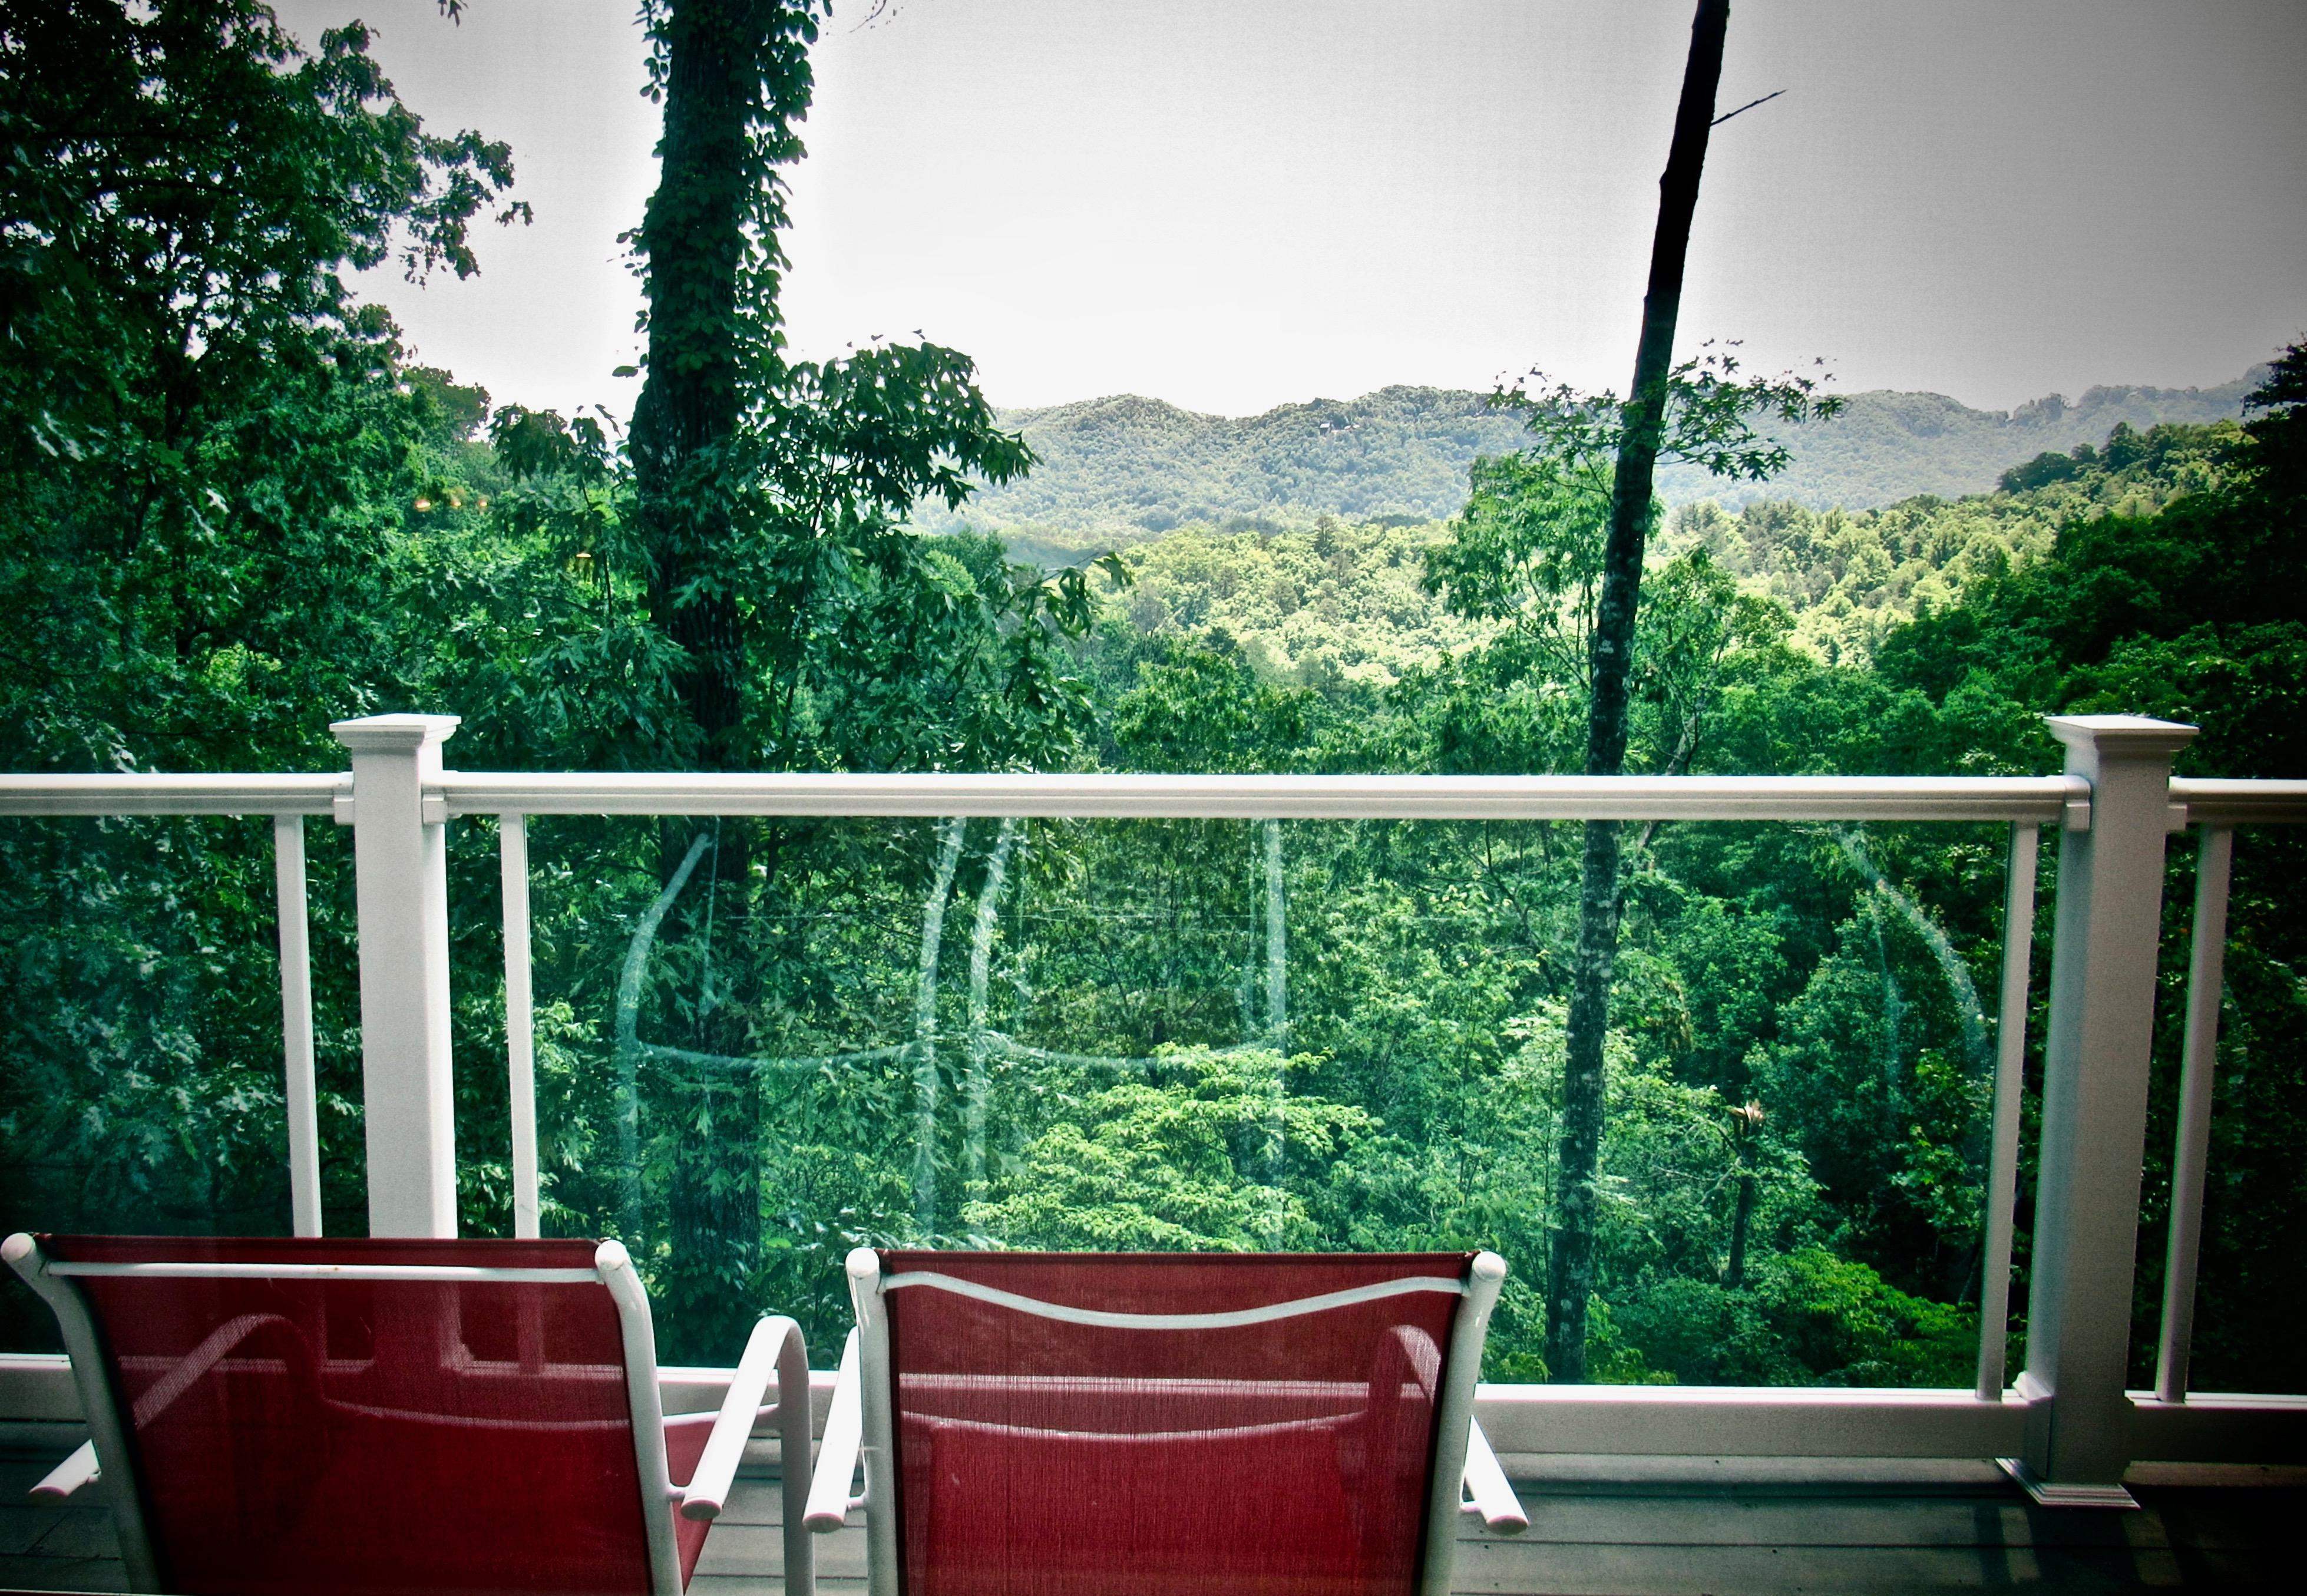 Enjoy Your Morning Coffee/Tea while taking in the Ever Changing Views...